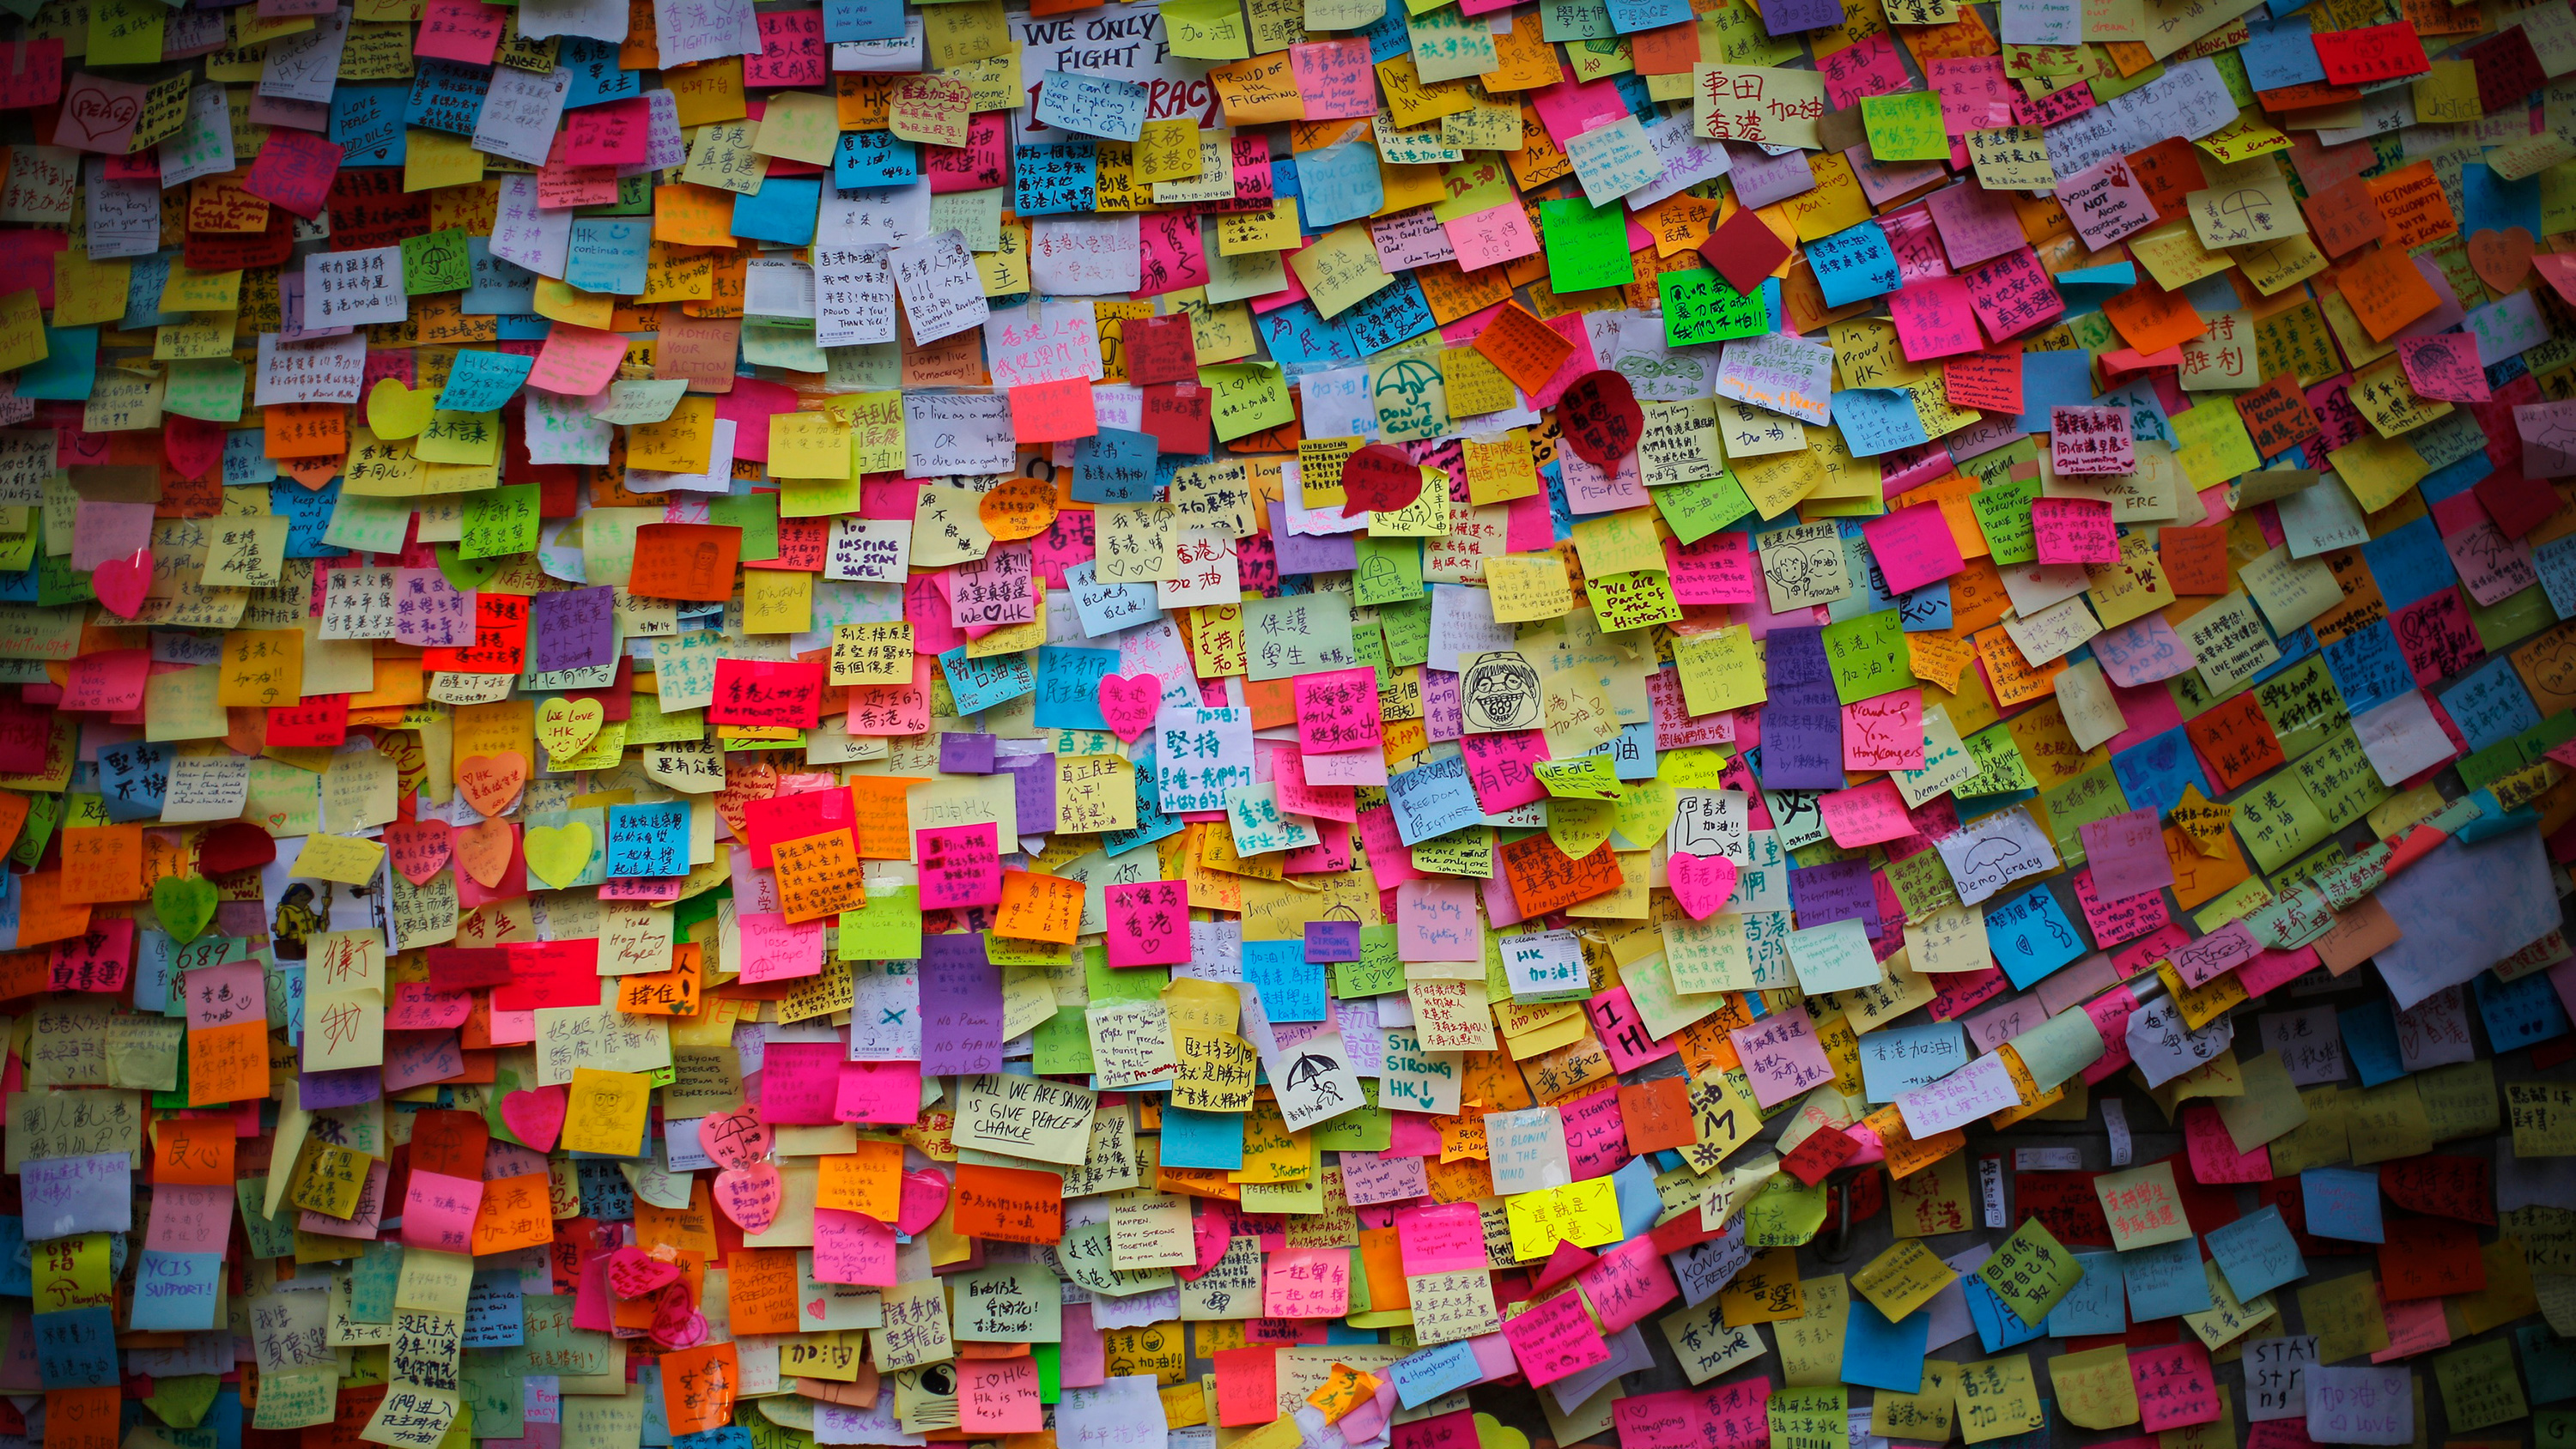 Picture shows a wall covered with thousands of stickies.